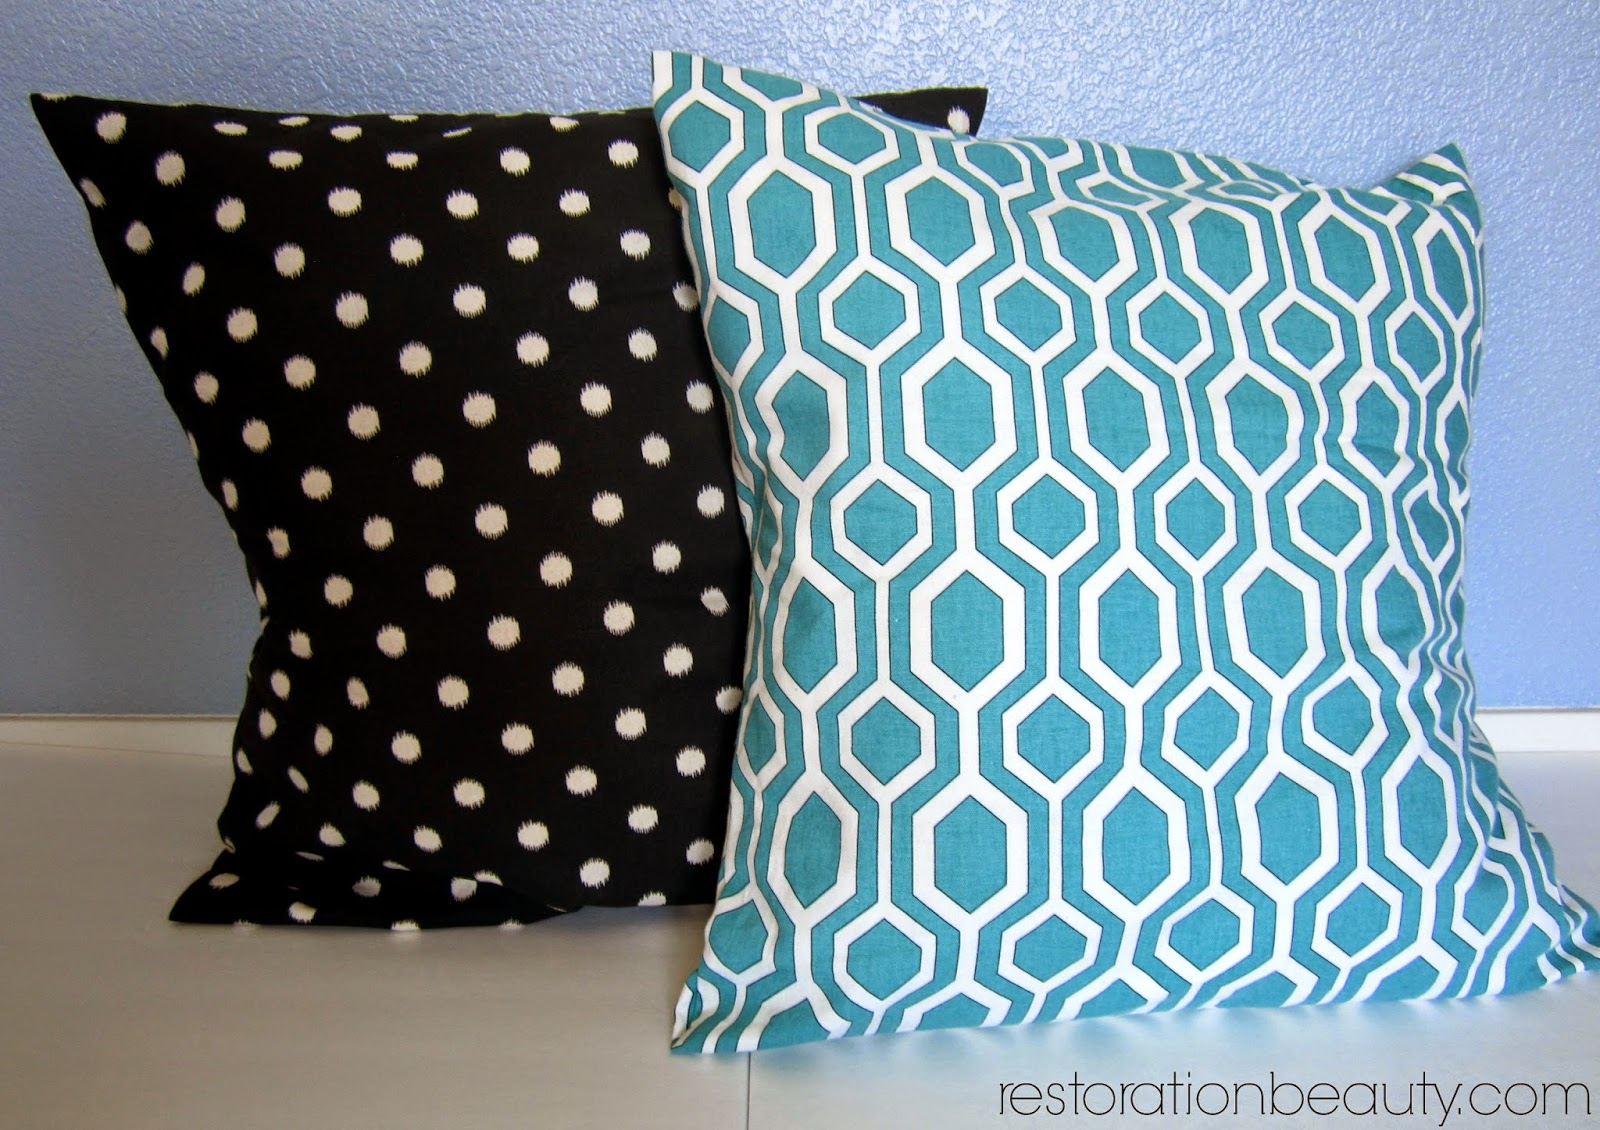 Restoration Beauty: Easier Than Ever No-Sew Floor Pillows